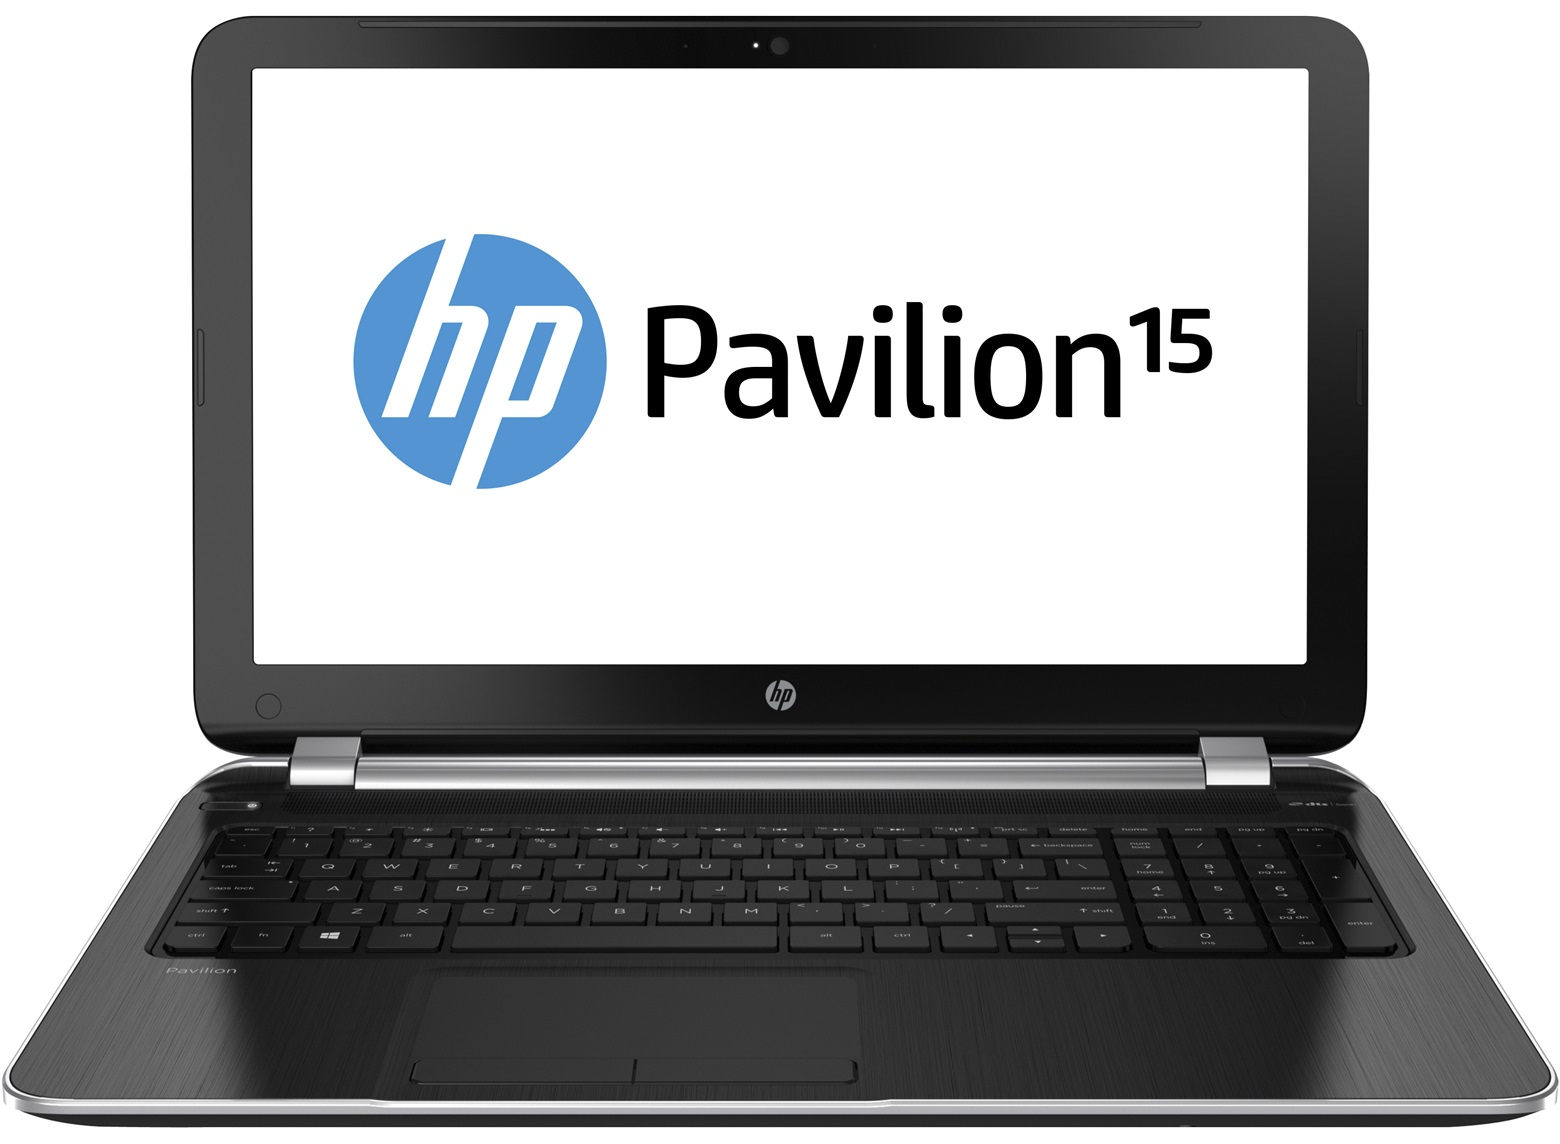 HP Pavilion 15-n032sa Core i3 laptop intel 3217U IvyBridge 8GB RAM 1TB HDD DVD-R